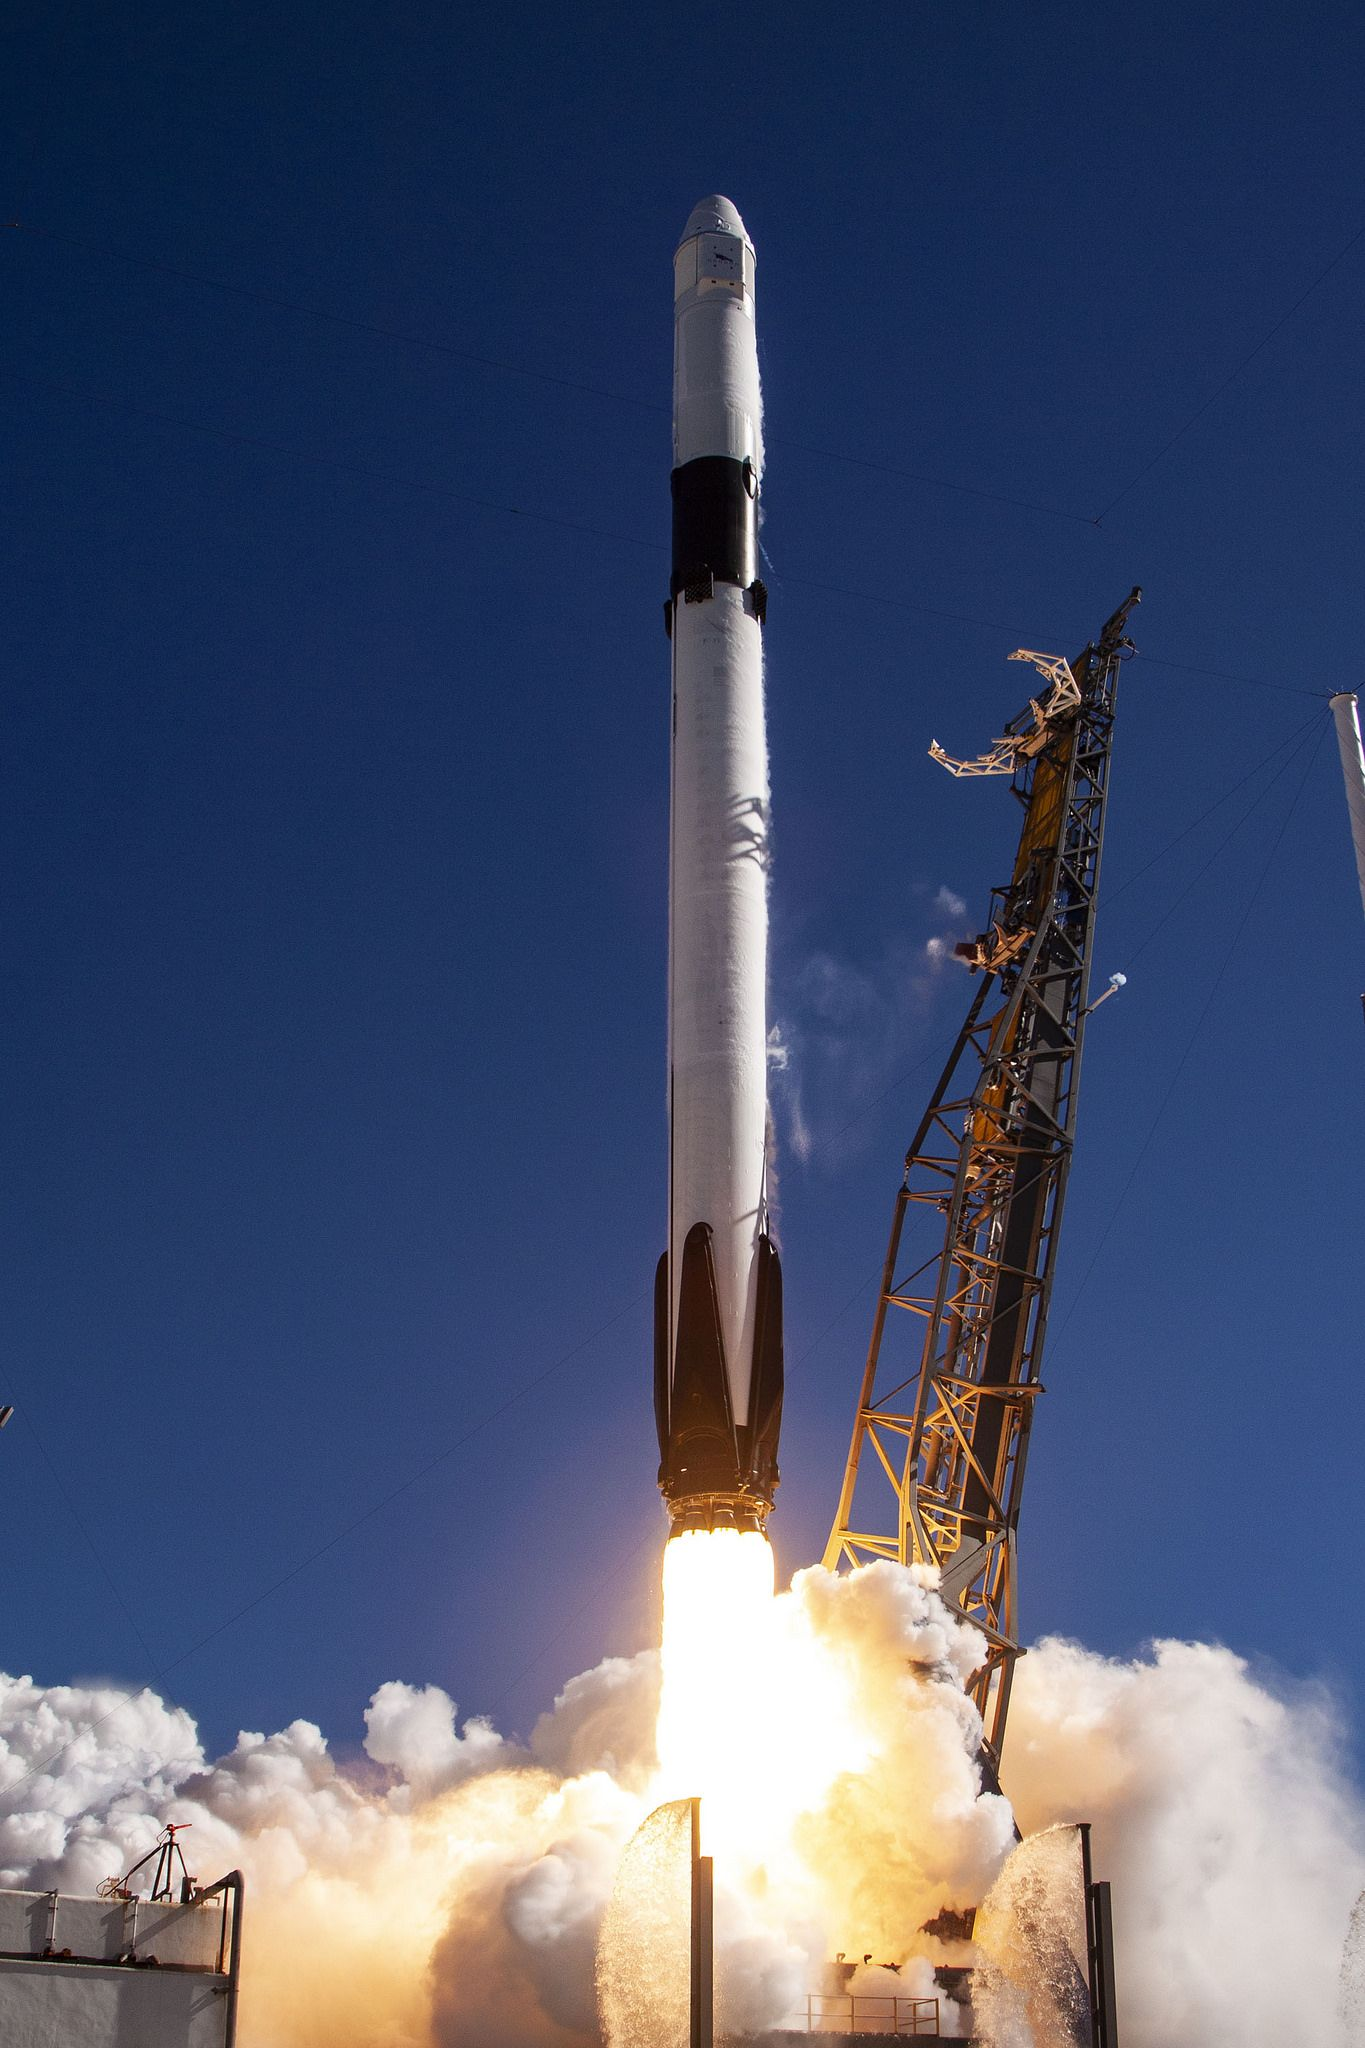 CRS 16 Mission Spacex Spacex dragon Rocket 1365x2048